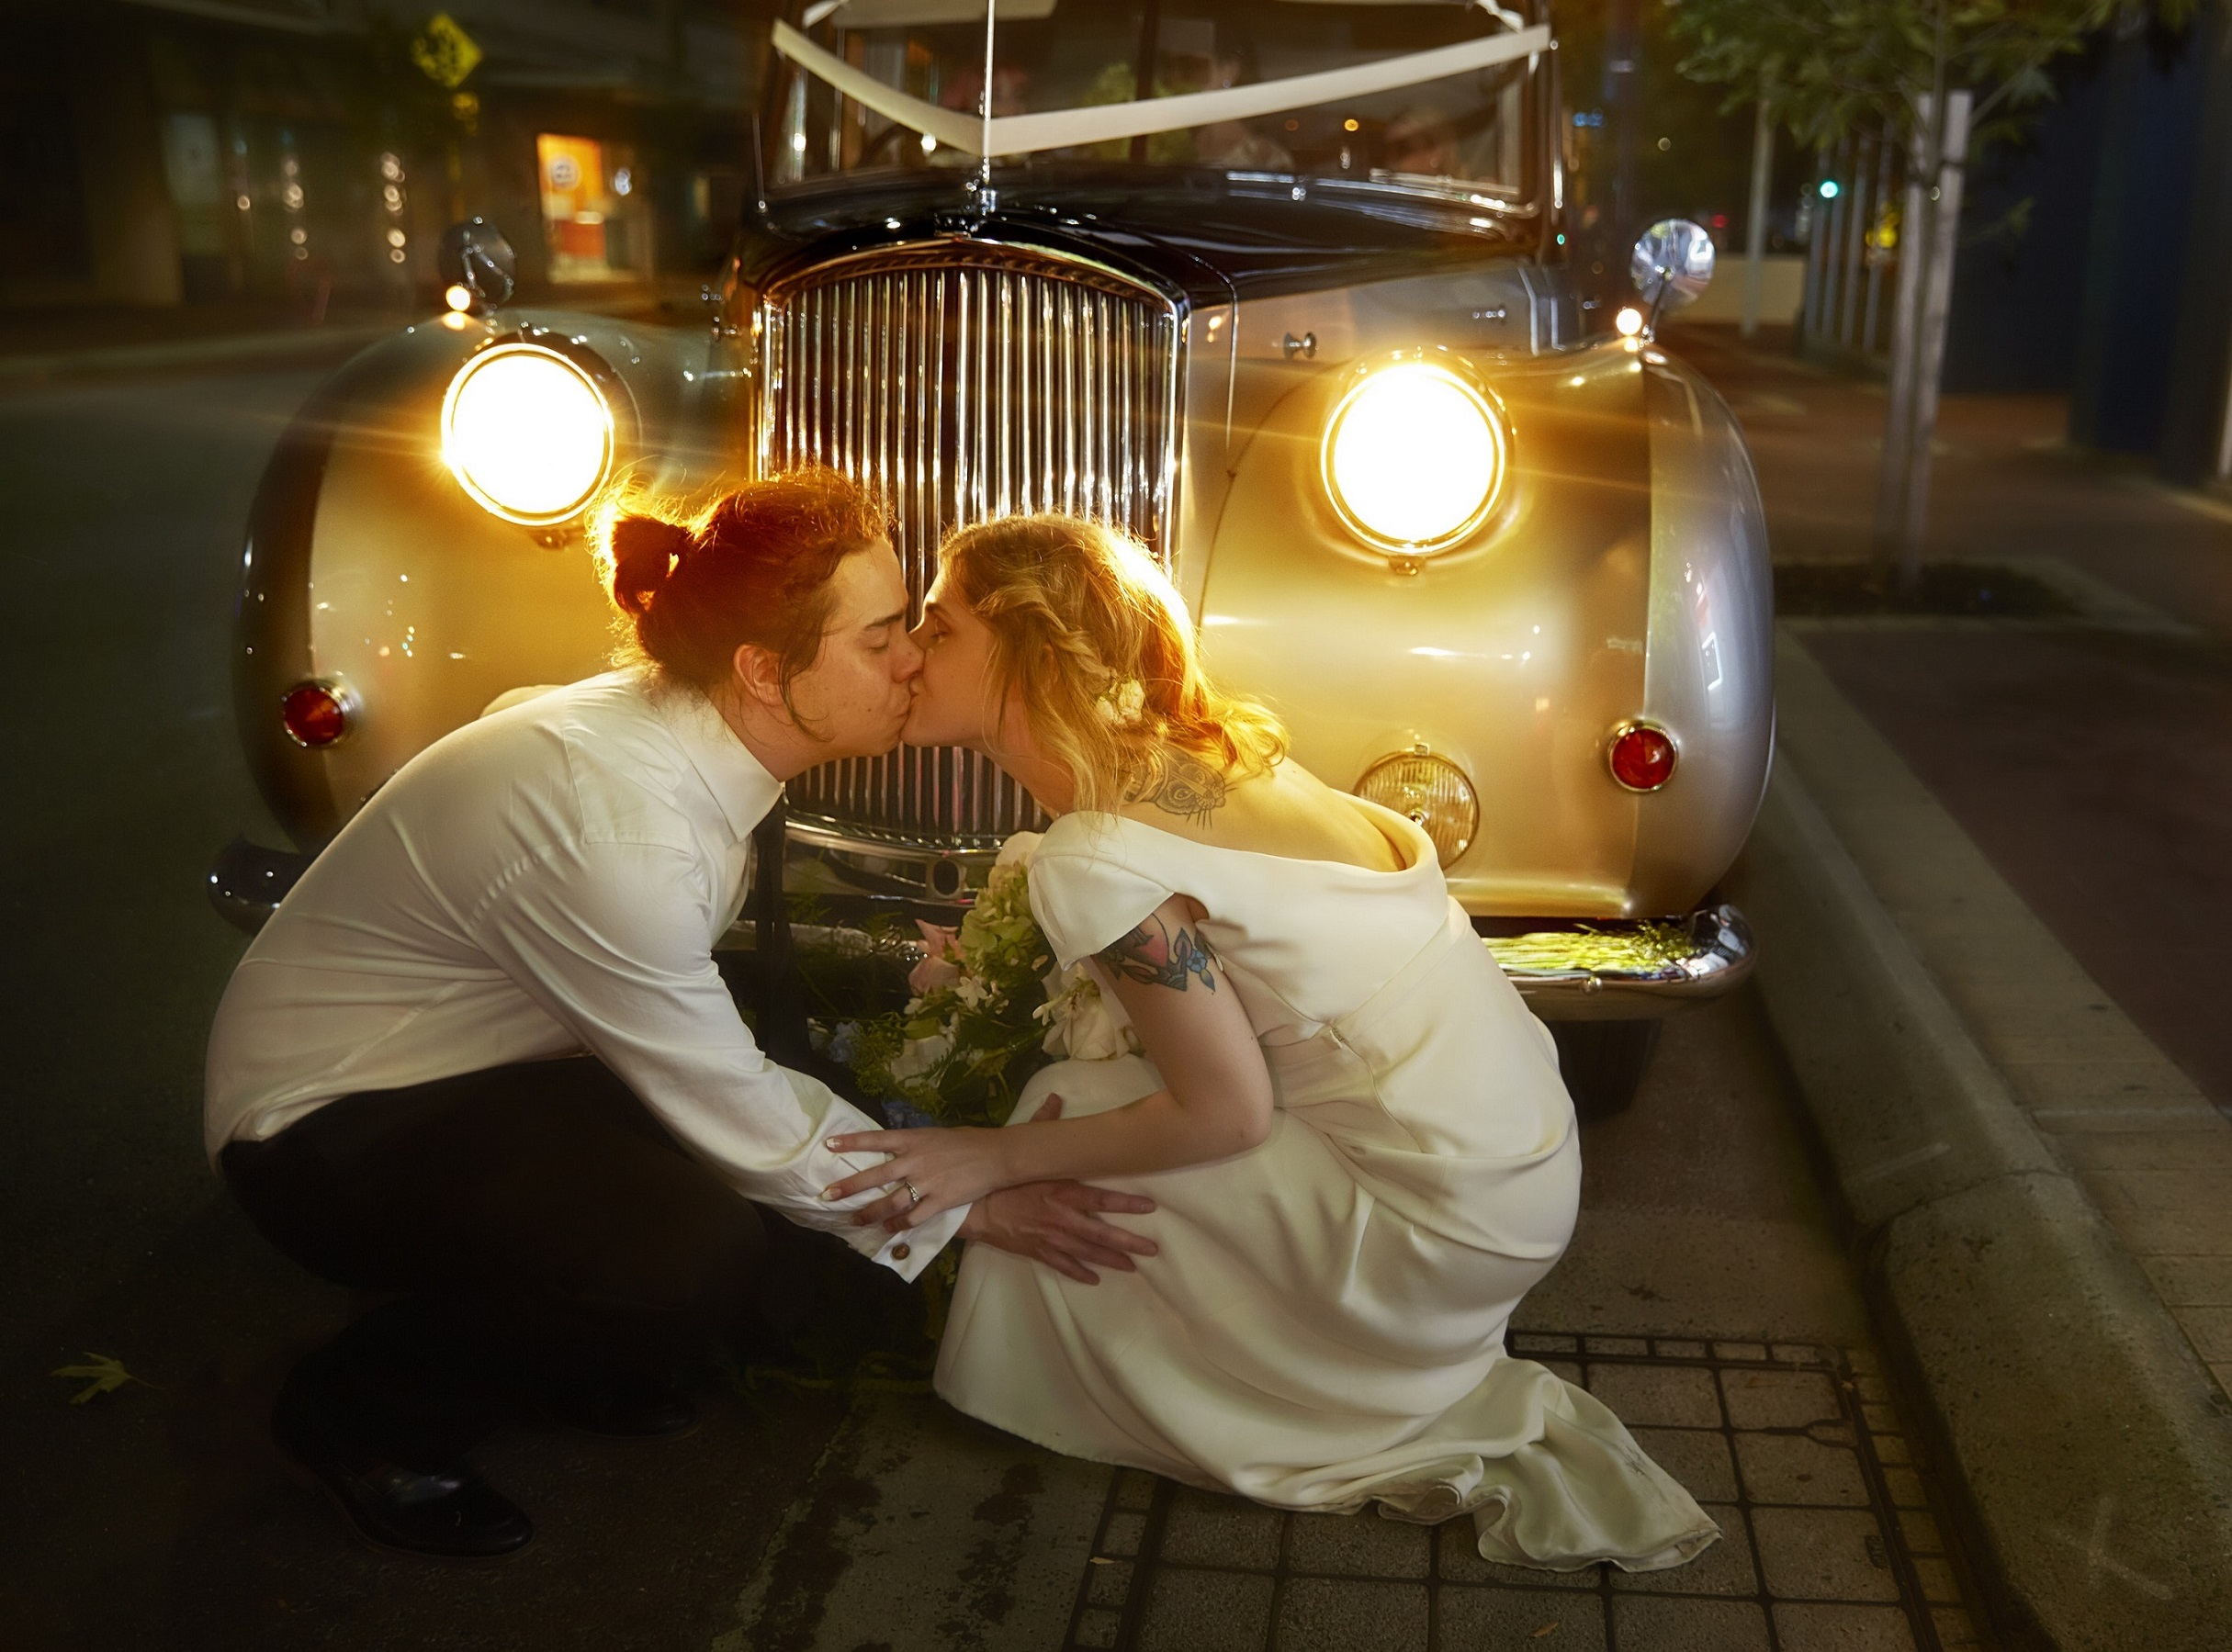 23-the-midnight-kiss-in-front-of-wedding-cars-in-perth-very-nice-classics - Copy.jpg